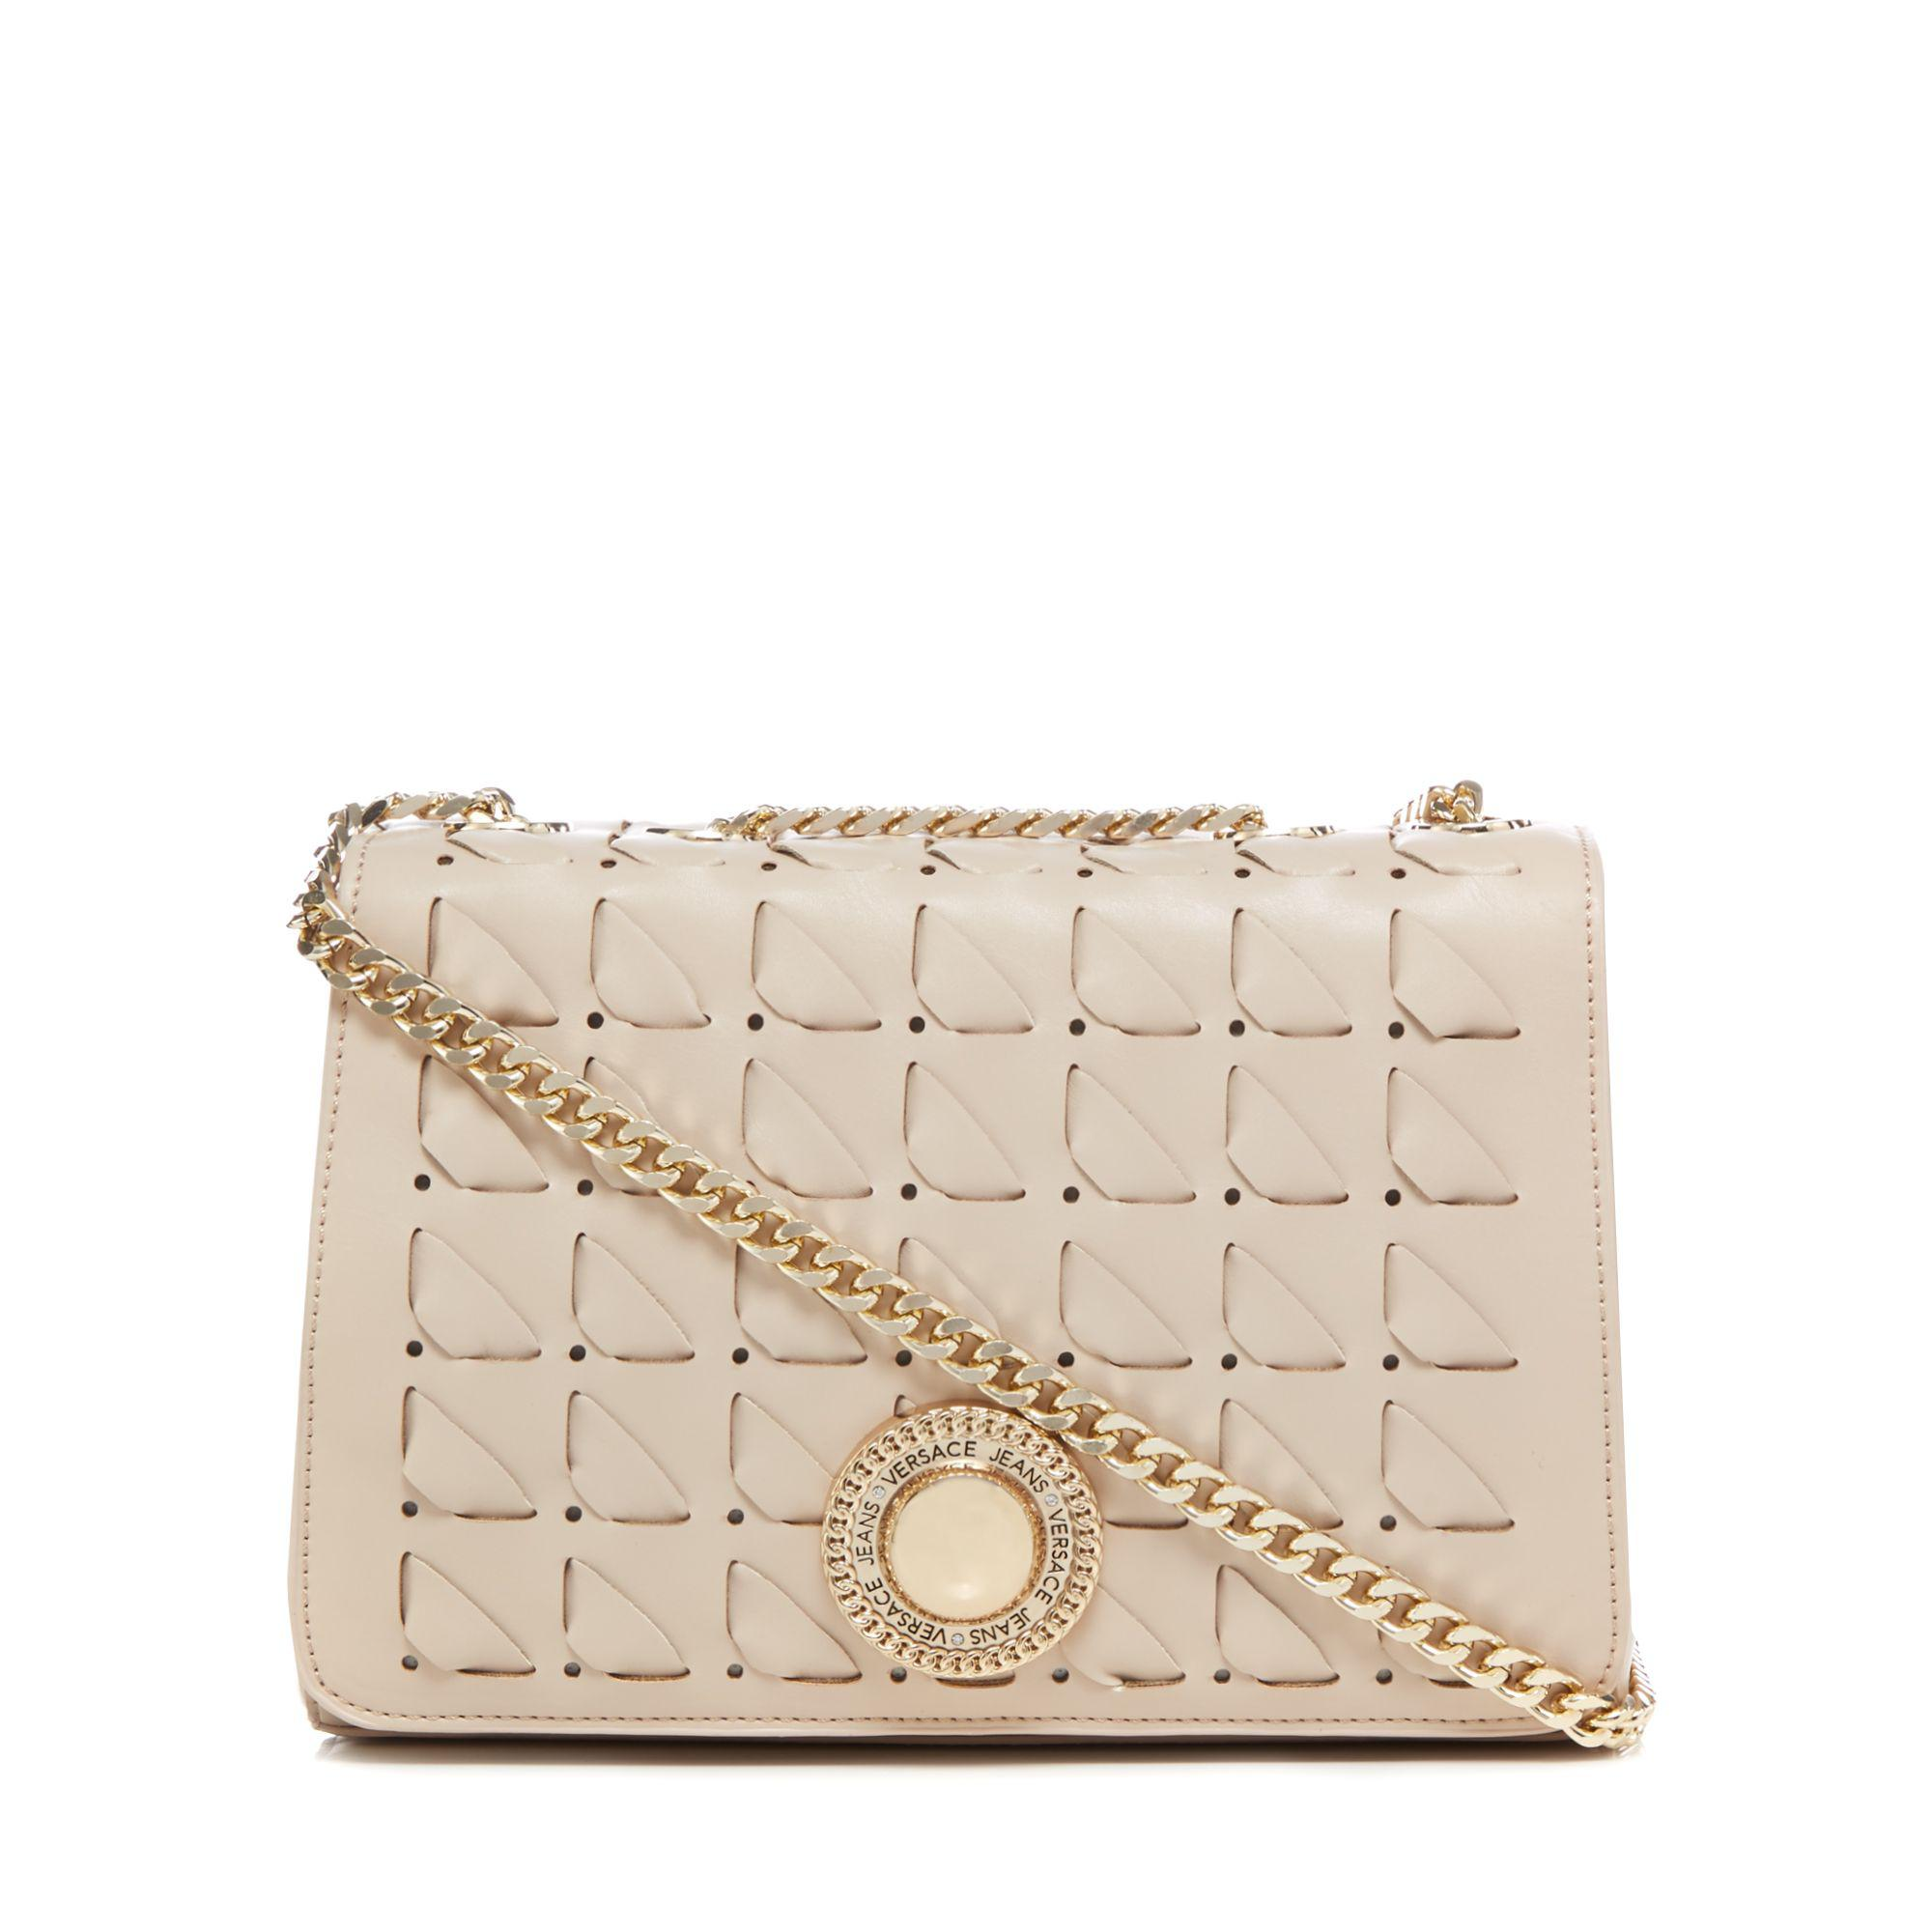 Versace Jeans Cream Interlace Cross Body Bag in Natural - Lyst 6508999cd5f12